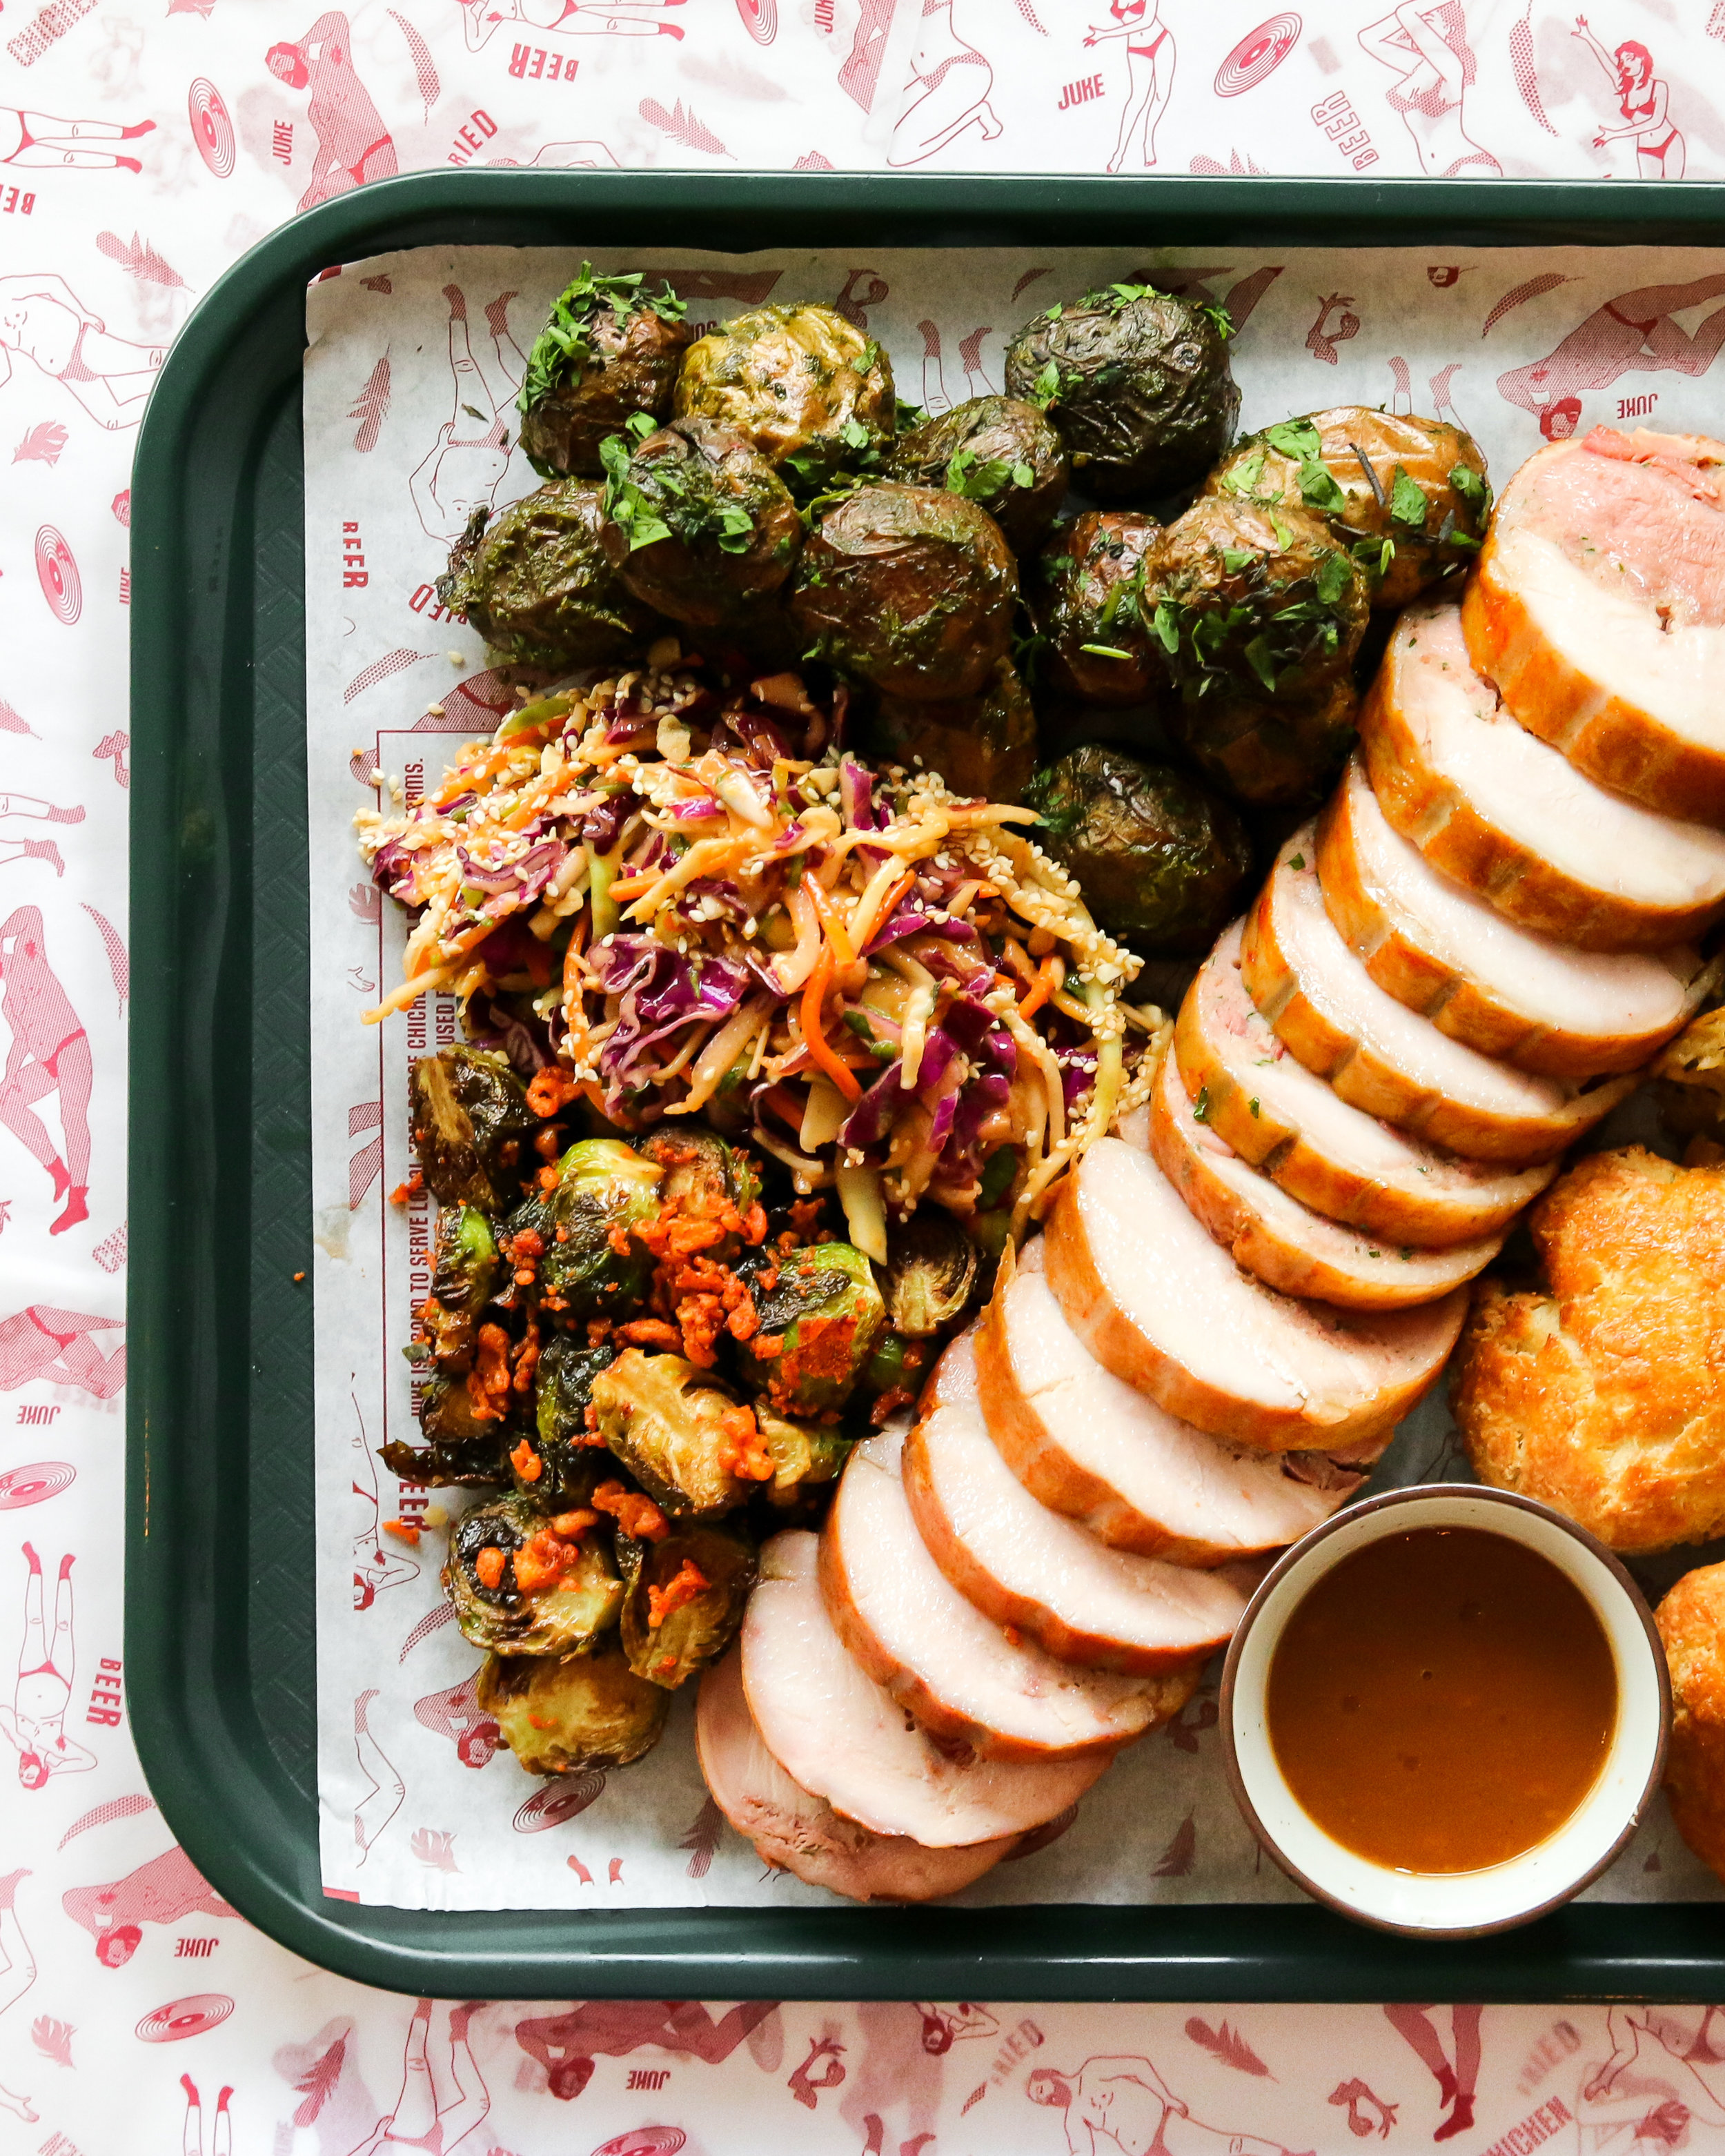 JUKE FRIED CHICKEN BRINGS BACK TURDUCKEN FEAST FOR EASTER WEEKEND - April 8, 2019The bird's the word this Easter as Juke Fried Chicken brings back their popular Turducken Feast for pick-up exclusively at their Little Juke location (1074 Davie Street) on Saturday, April 20 and Sunday, April 21.Juke's Easter Turducken Feast feeds six to eight people and includes pre-sliced turducken — a three-in-one showstopper featuring roasted turkey, duck and chicken — accompanied by large sides of fried Brussels sprouts, herb-roasted potatoes, fennel pork and pistachio stuffing, Cacio E Pepe fried cauliflower, and country biscuits with whipped schmaltz as well as a nostalgic package of marshmallow Peeps.Feasts are available for $169 plus tax and can be ordered by emailing info@jukefriedchicken.com before noon on Wednesday, April 17.